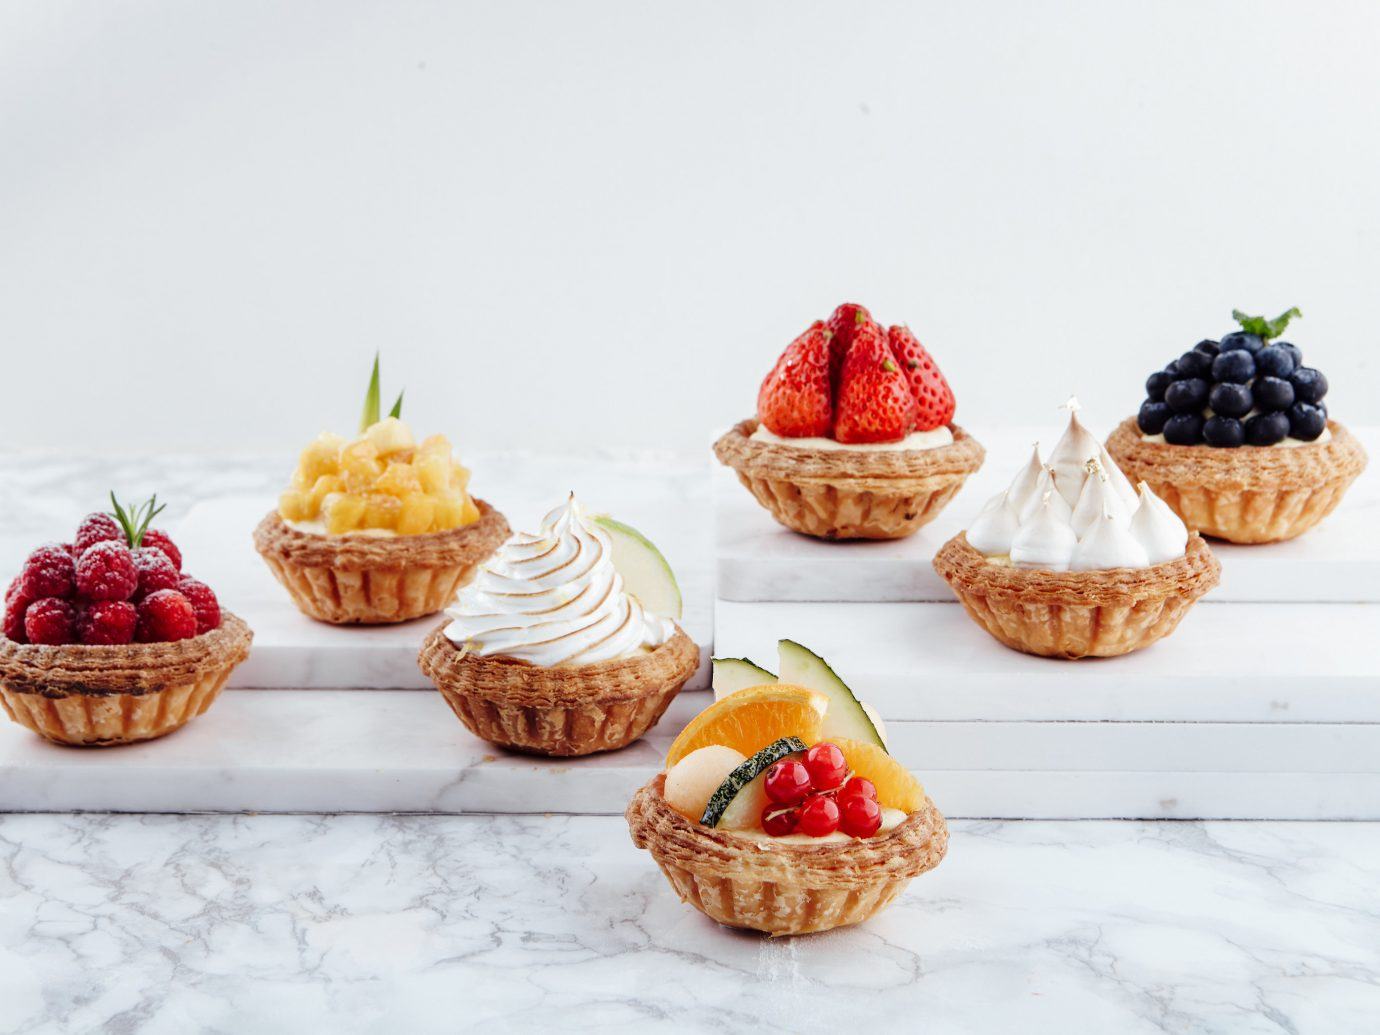 Food + Drink France Paris food strawberry plate dessert cupcake strawberries cake produce fruit muffin dish meal breakfast baked goods baking several